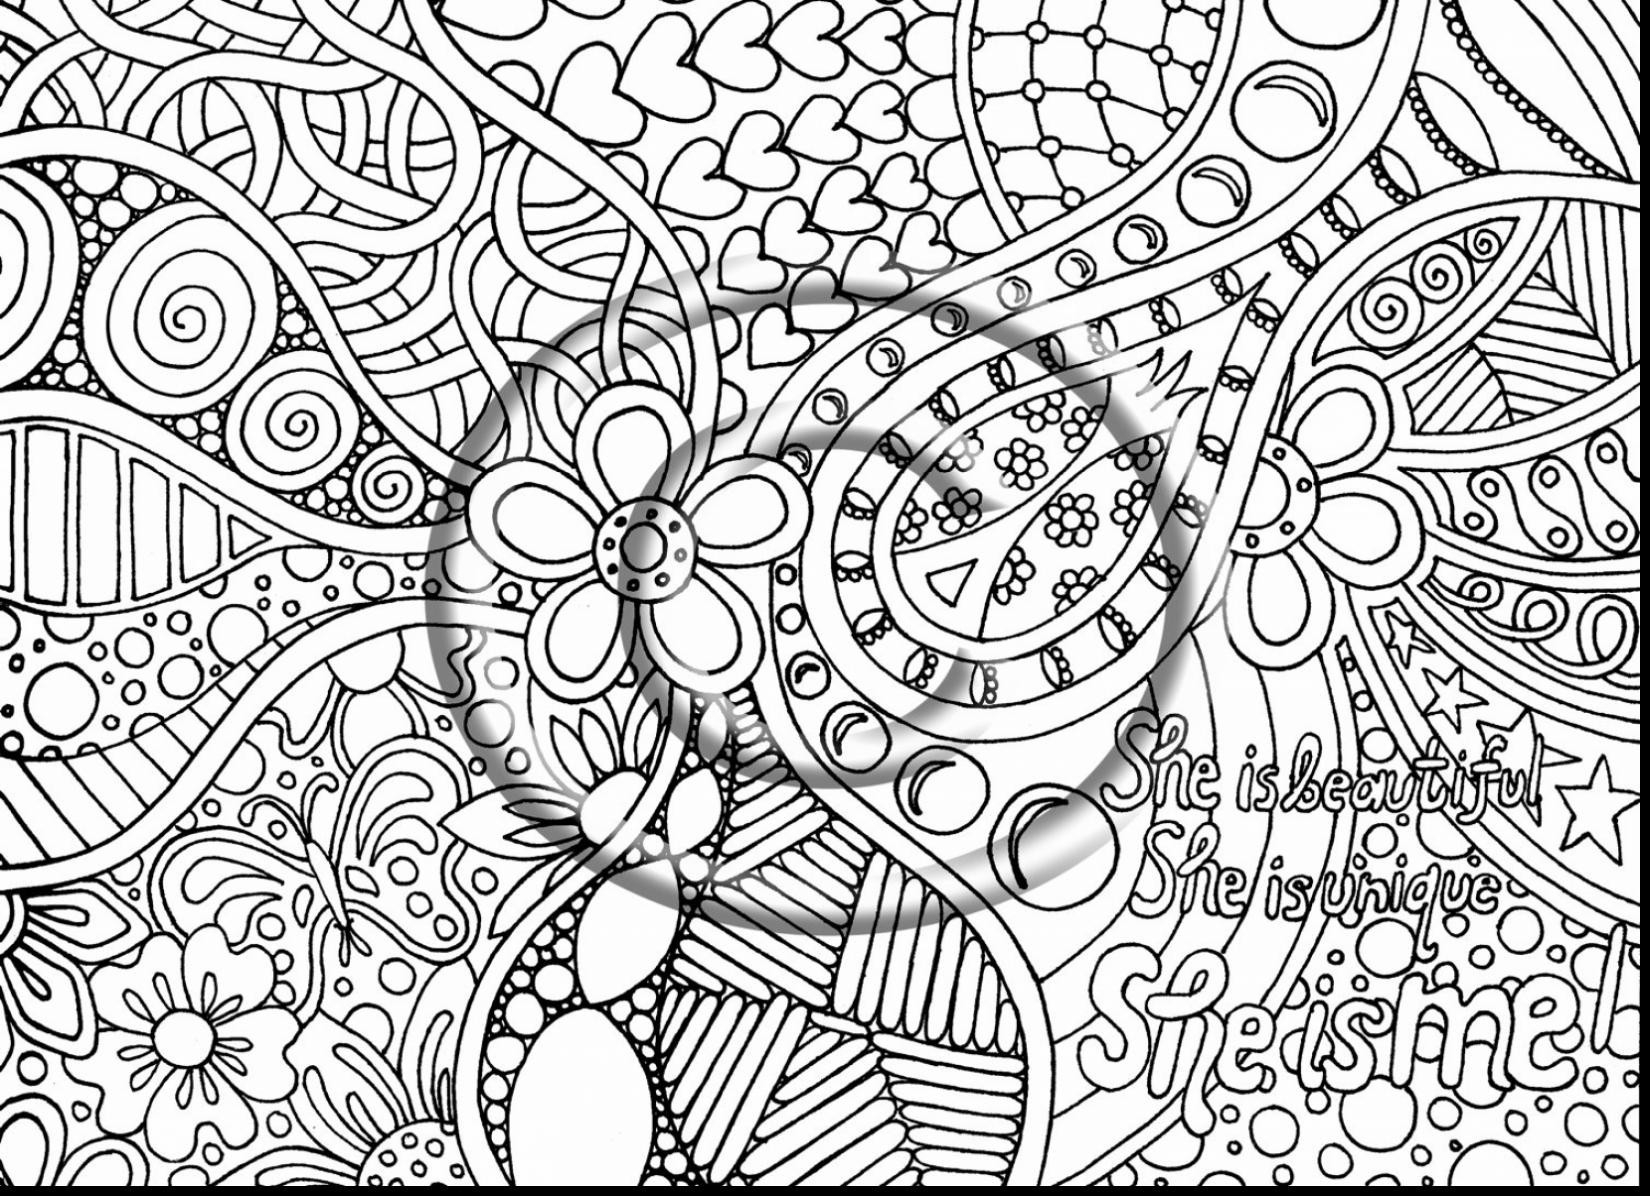 30+ Inspiration Image of Trippy Coloring Pages ...